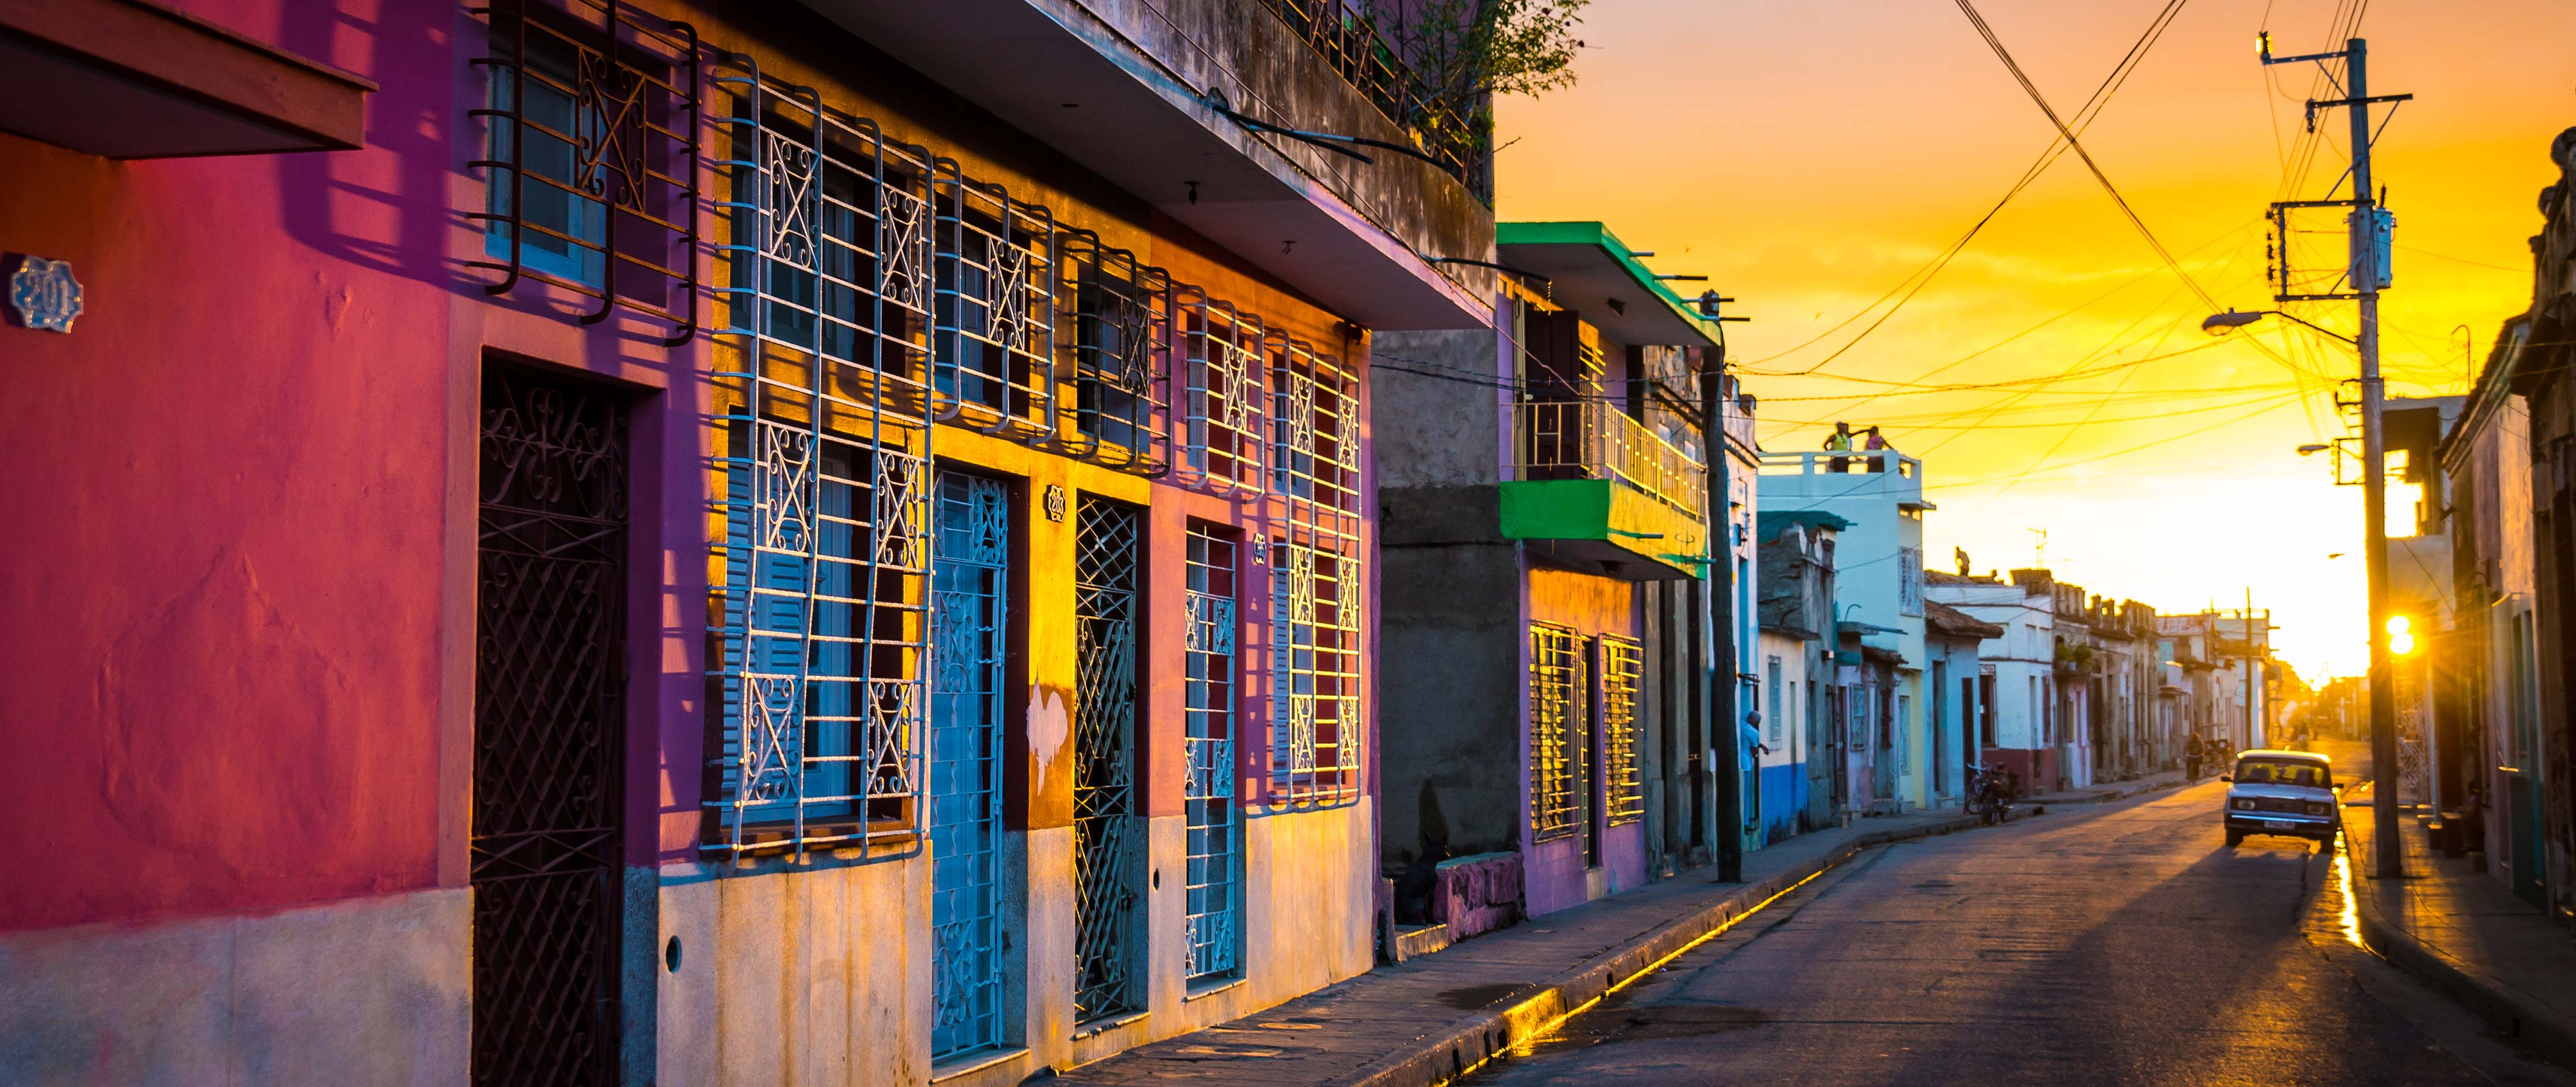 Why you should visit Cuba right now